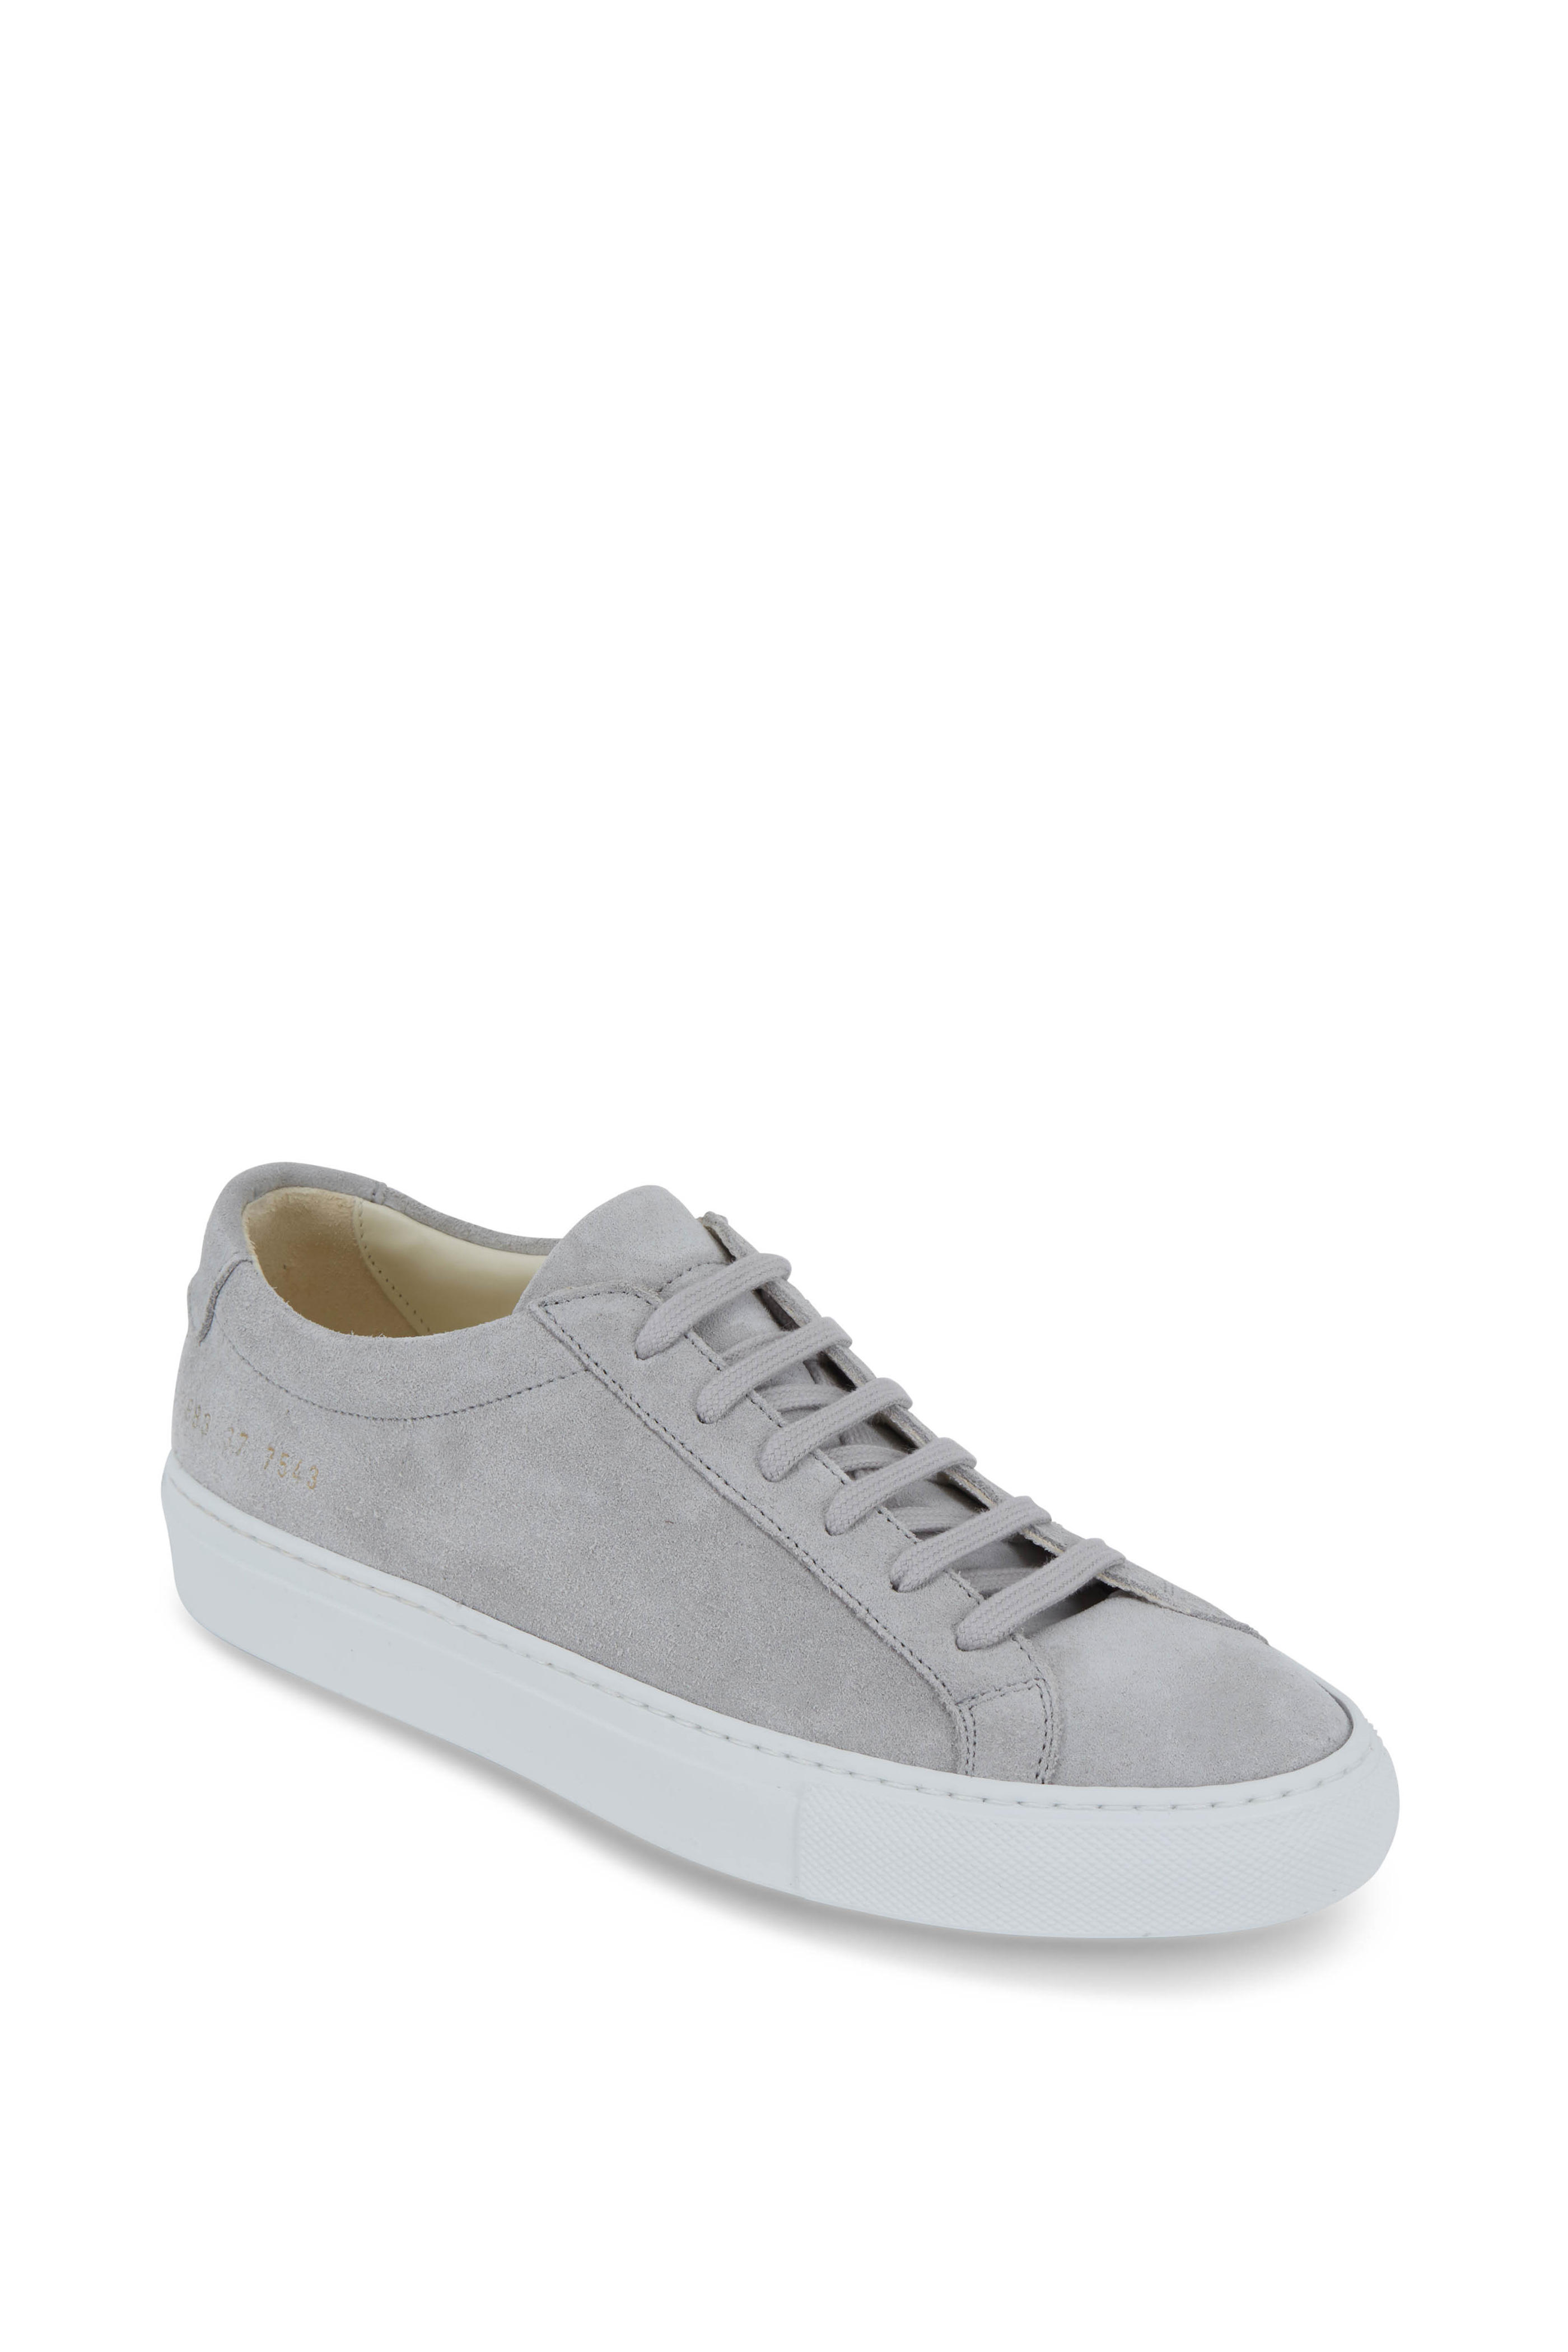 WOMAN by COMMON PROJECTS. Women s Original Achilles Gray Suede Sneaker cd84bbc99